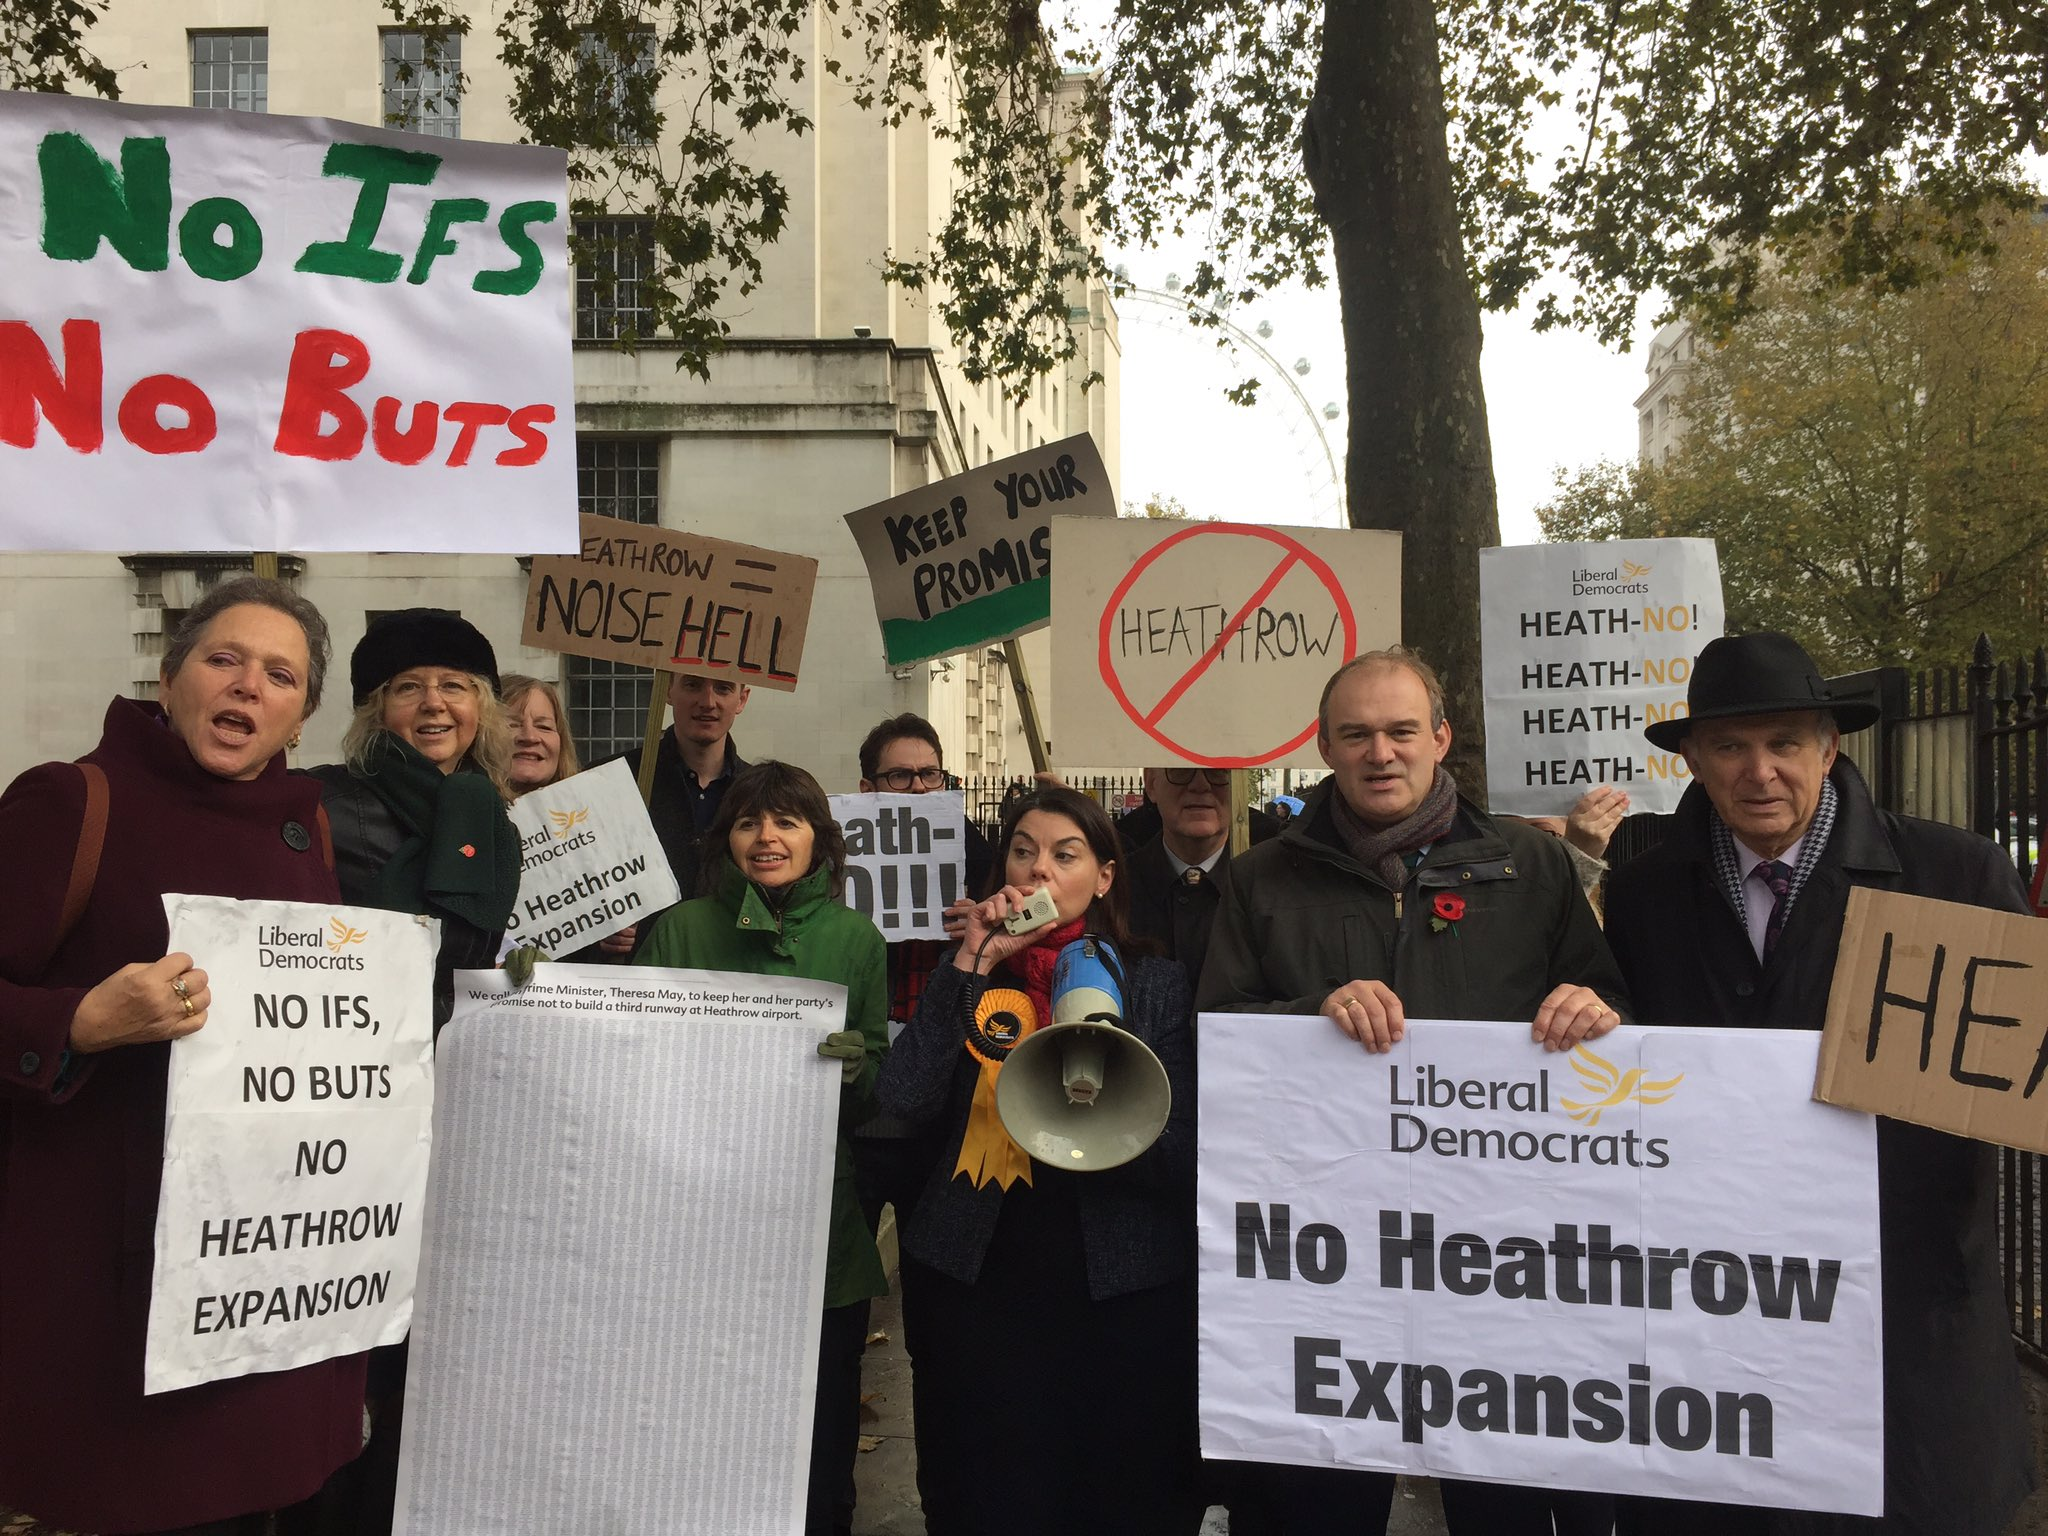 #LibDemFightback: Liberal Democrats hand in Heathrow petition to Downing Street